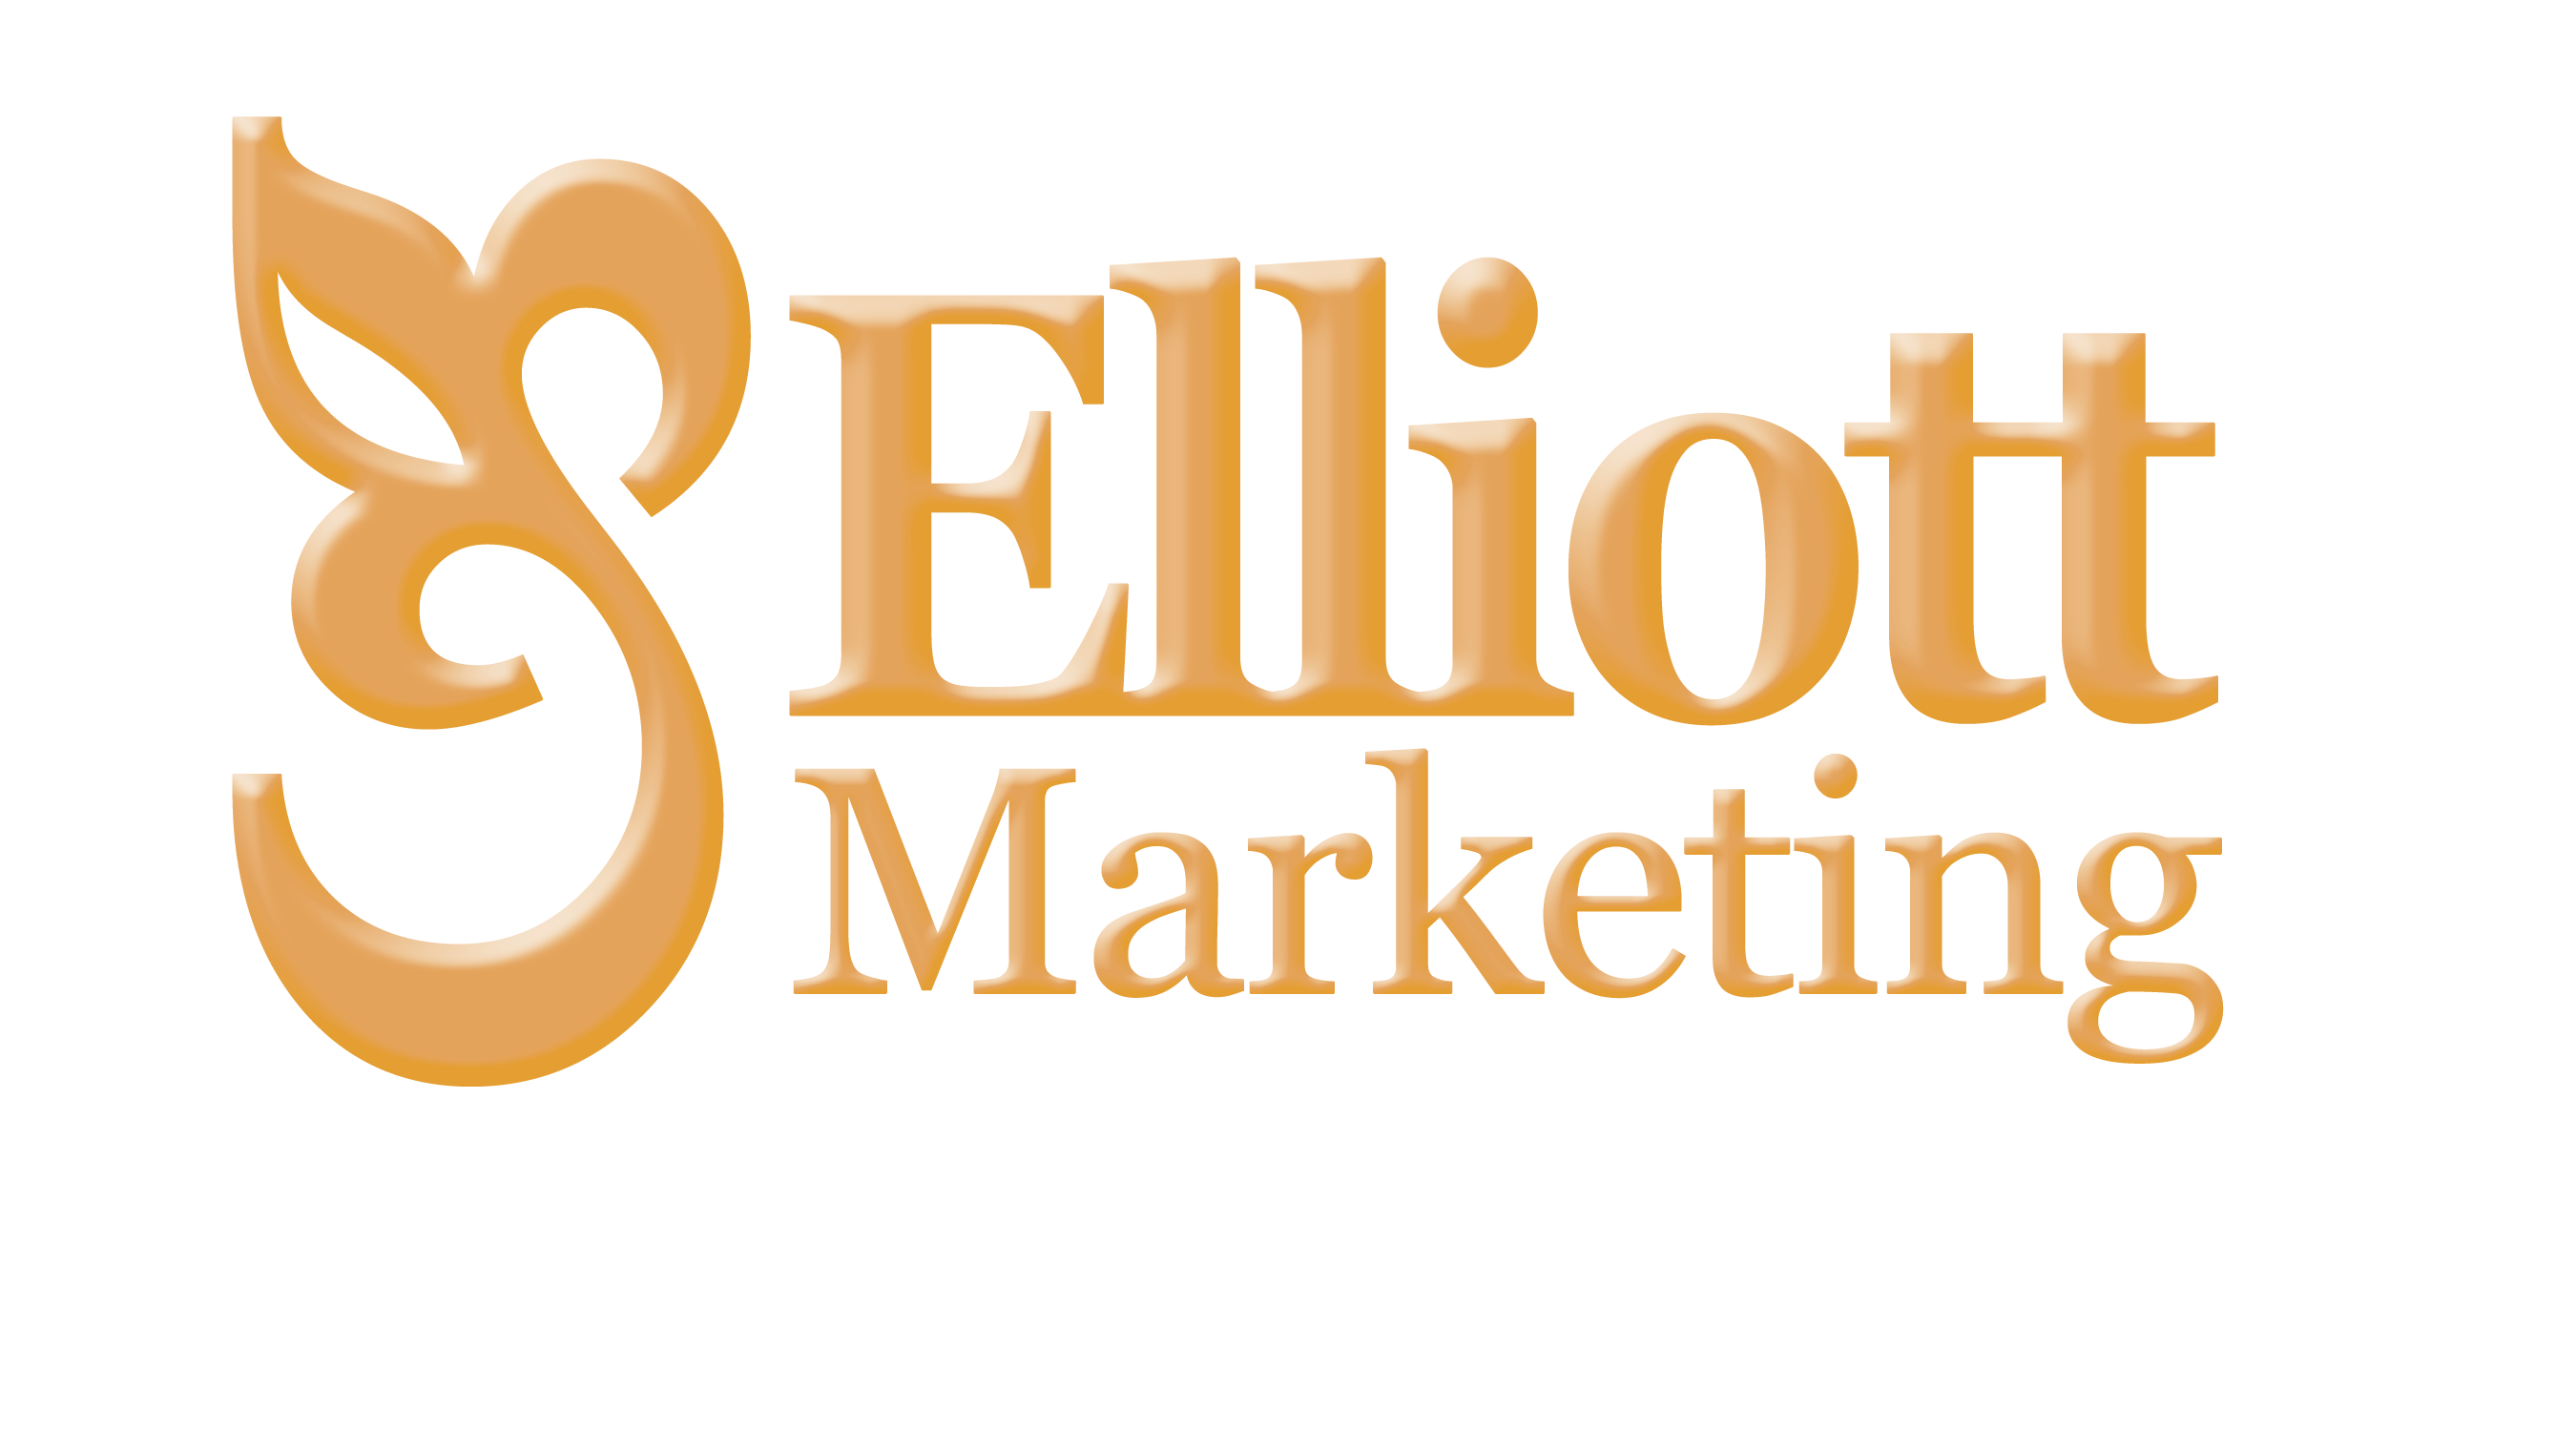 Elliott Marketing:  you need a website, we make it easy.